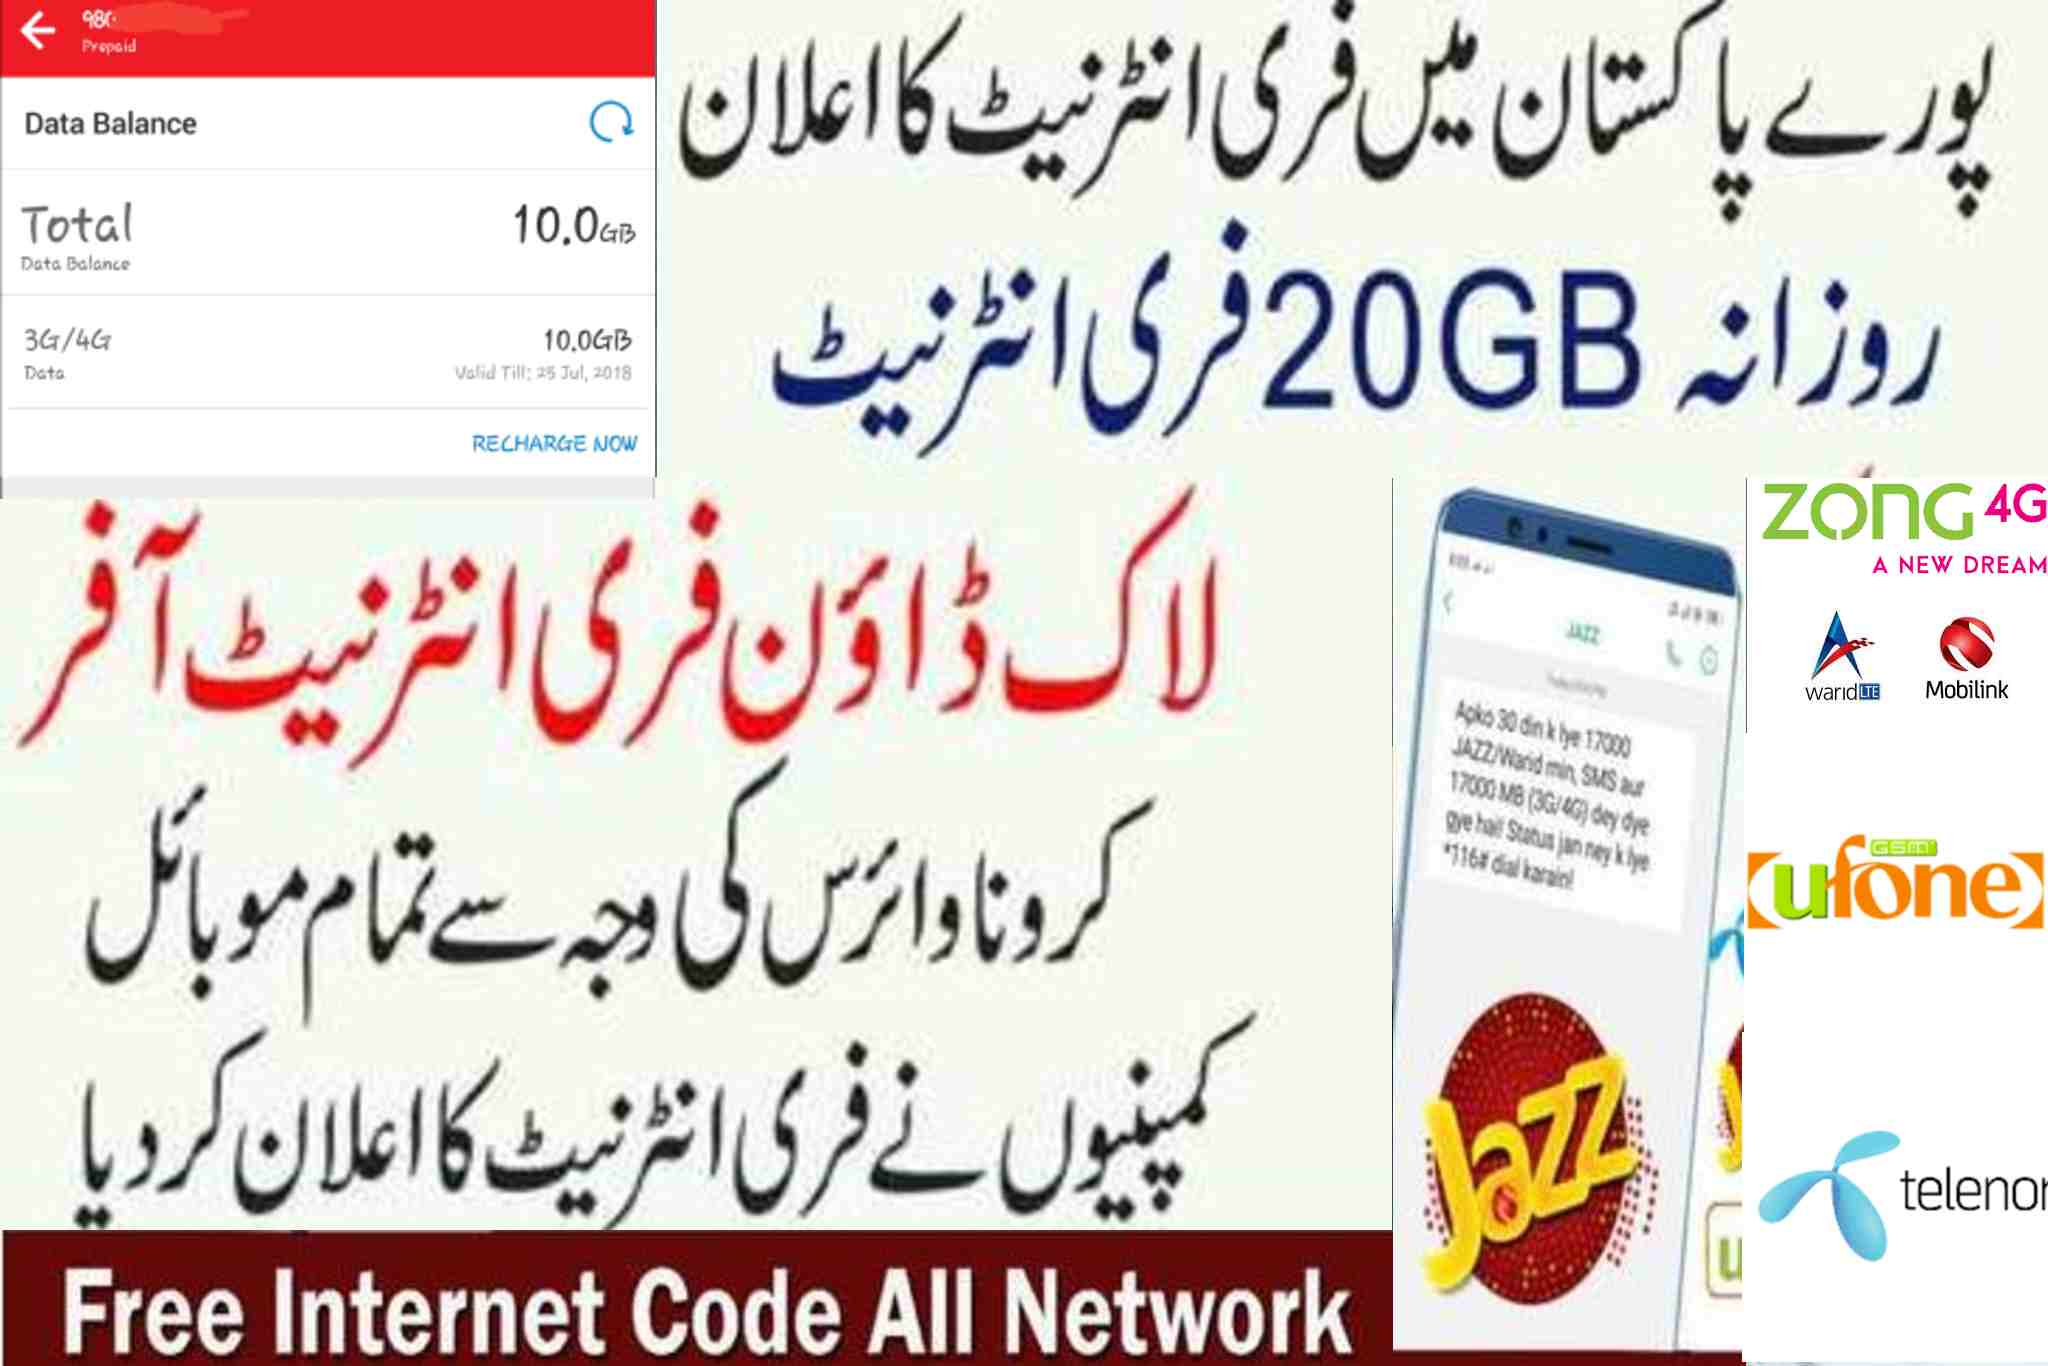 Free Internet Code 2020 3G/4G Unlimted Internet Free 50 GB for All Networks